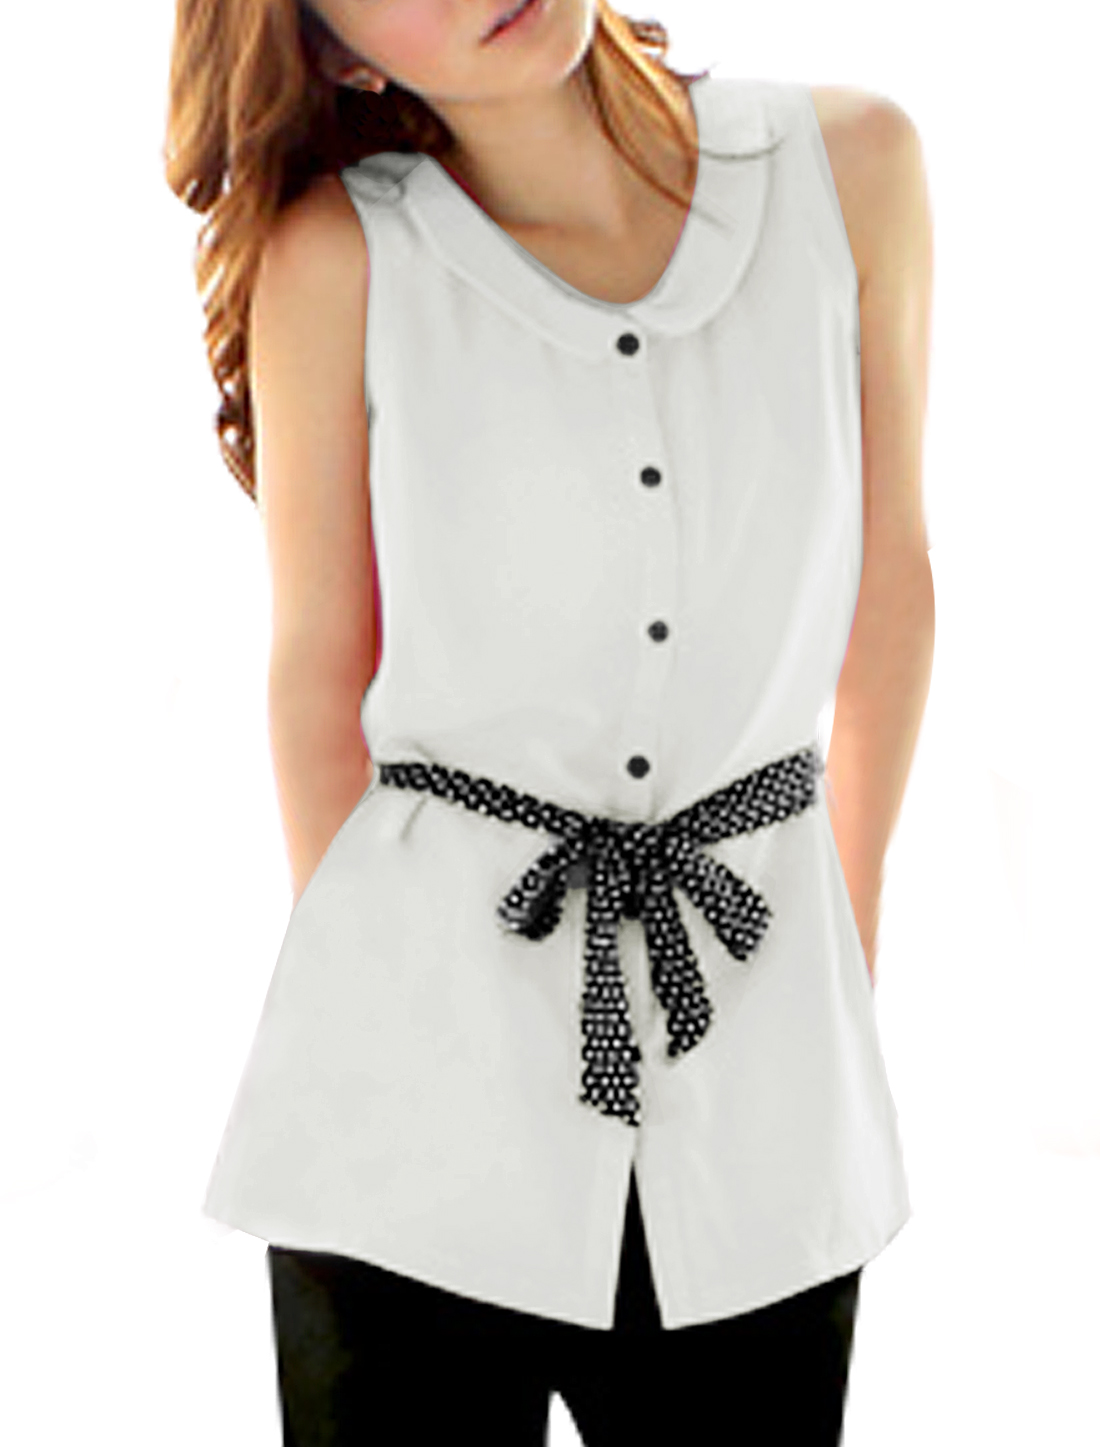 Lady White Sleeveless Doll Collar Button Closure Casual Tunic Top XL